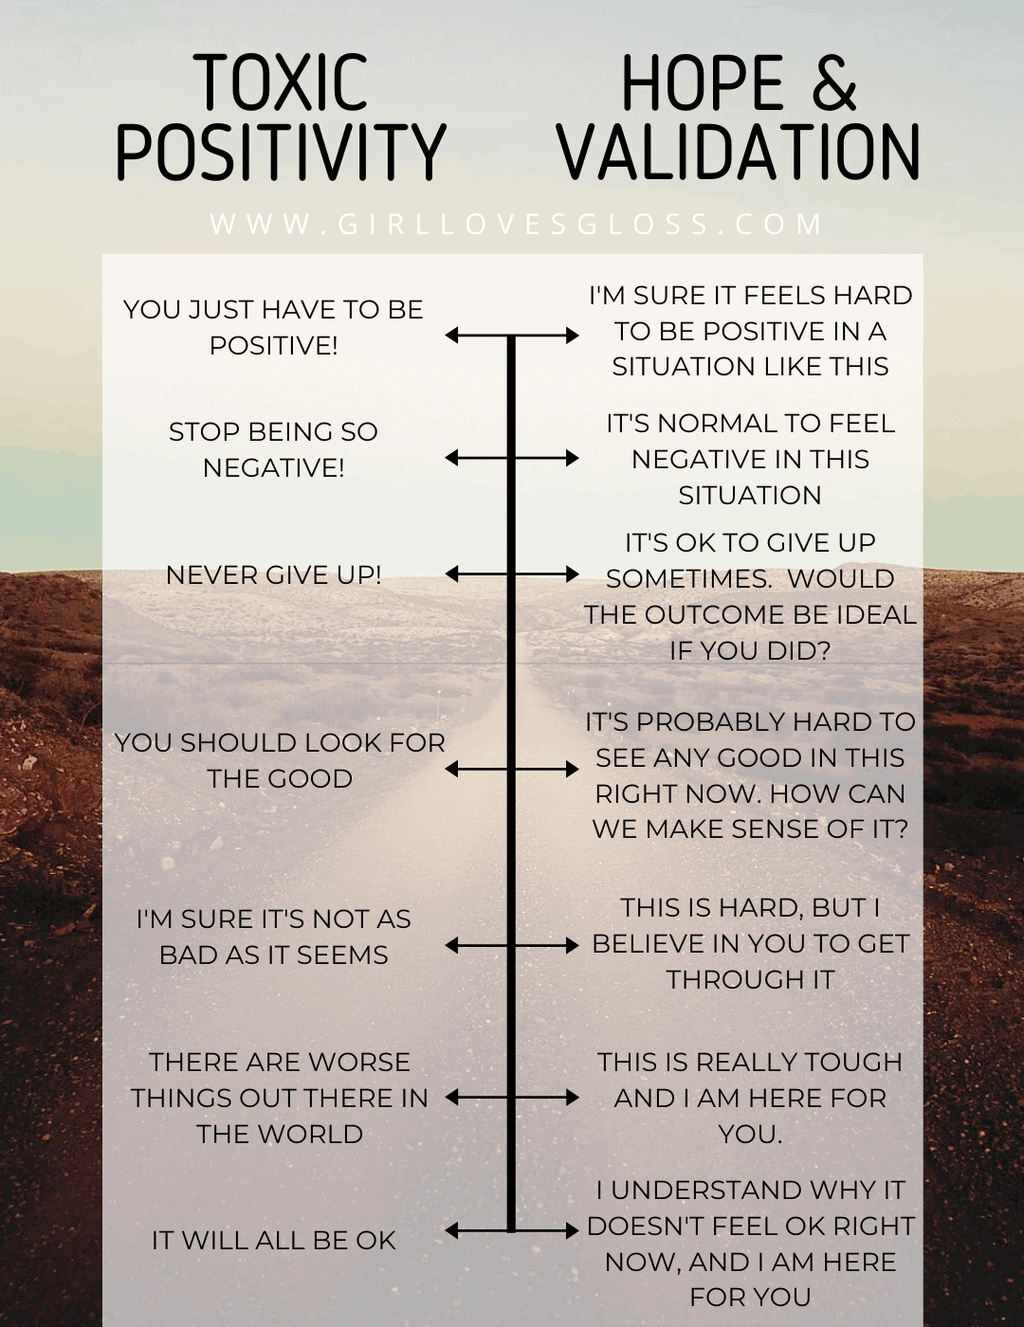 The difference between toxic positivity vs hope and validation